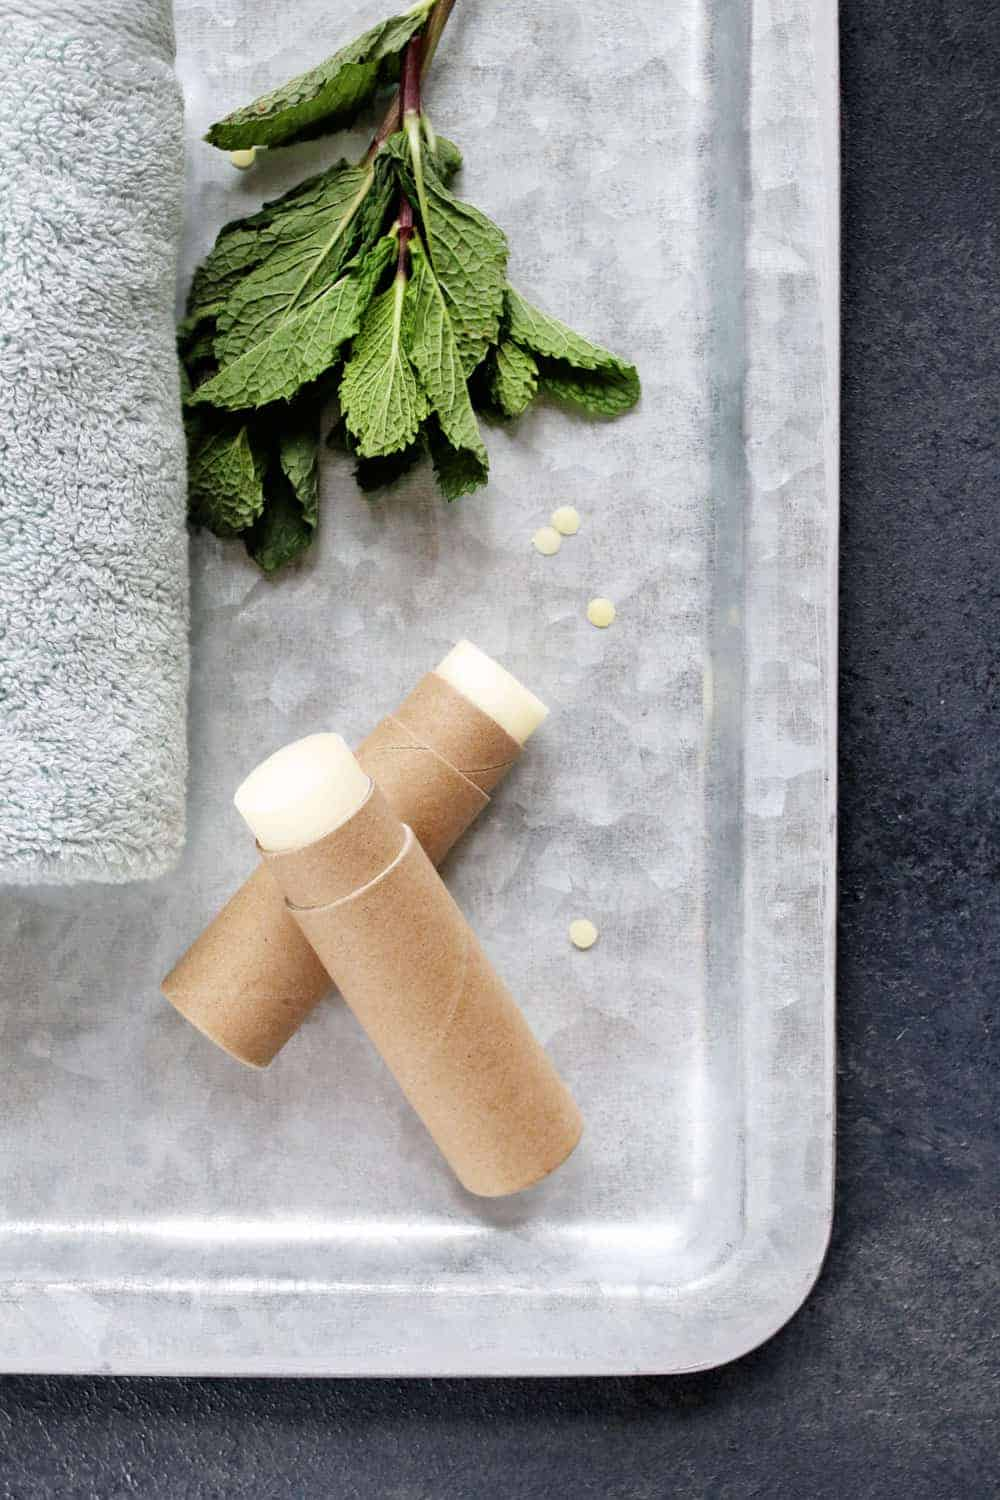 Soothe Bites Naturally With These Essential Oil Bug Balm Sticks